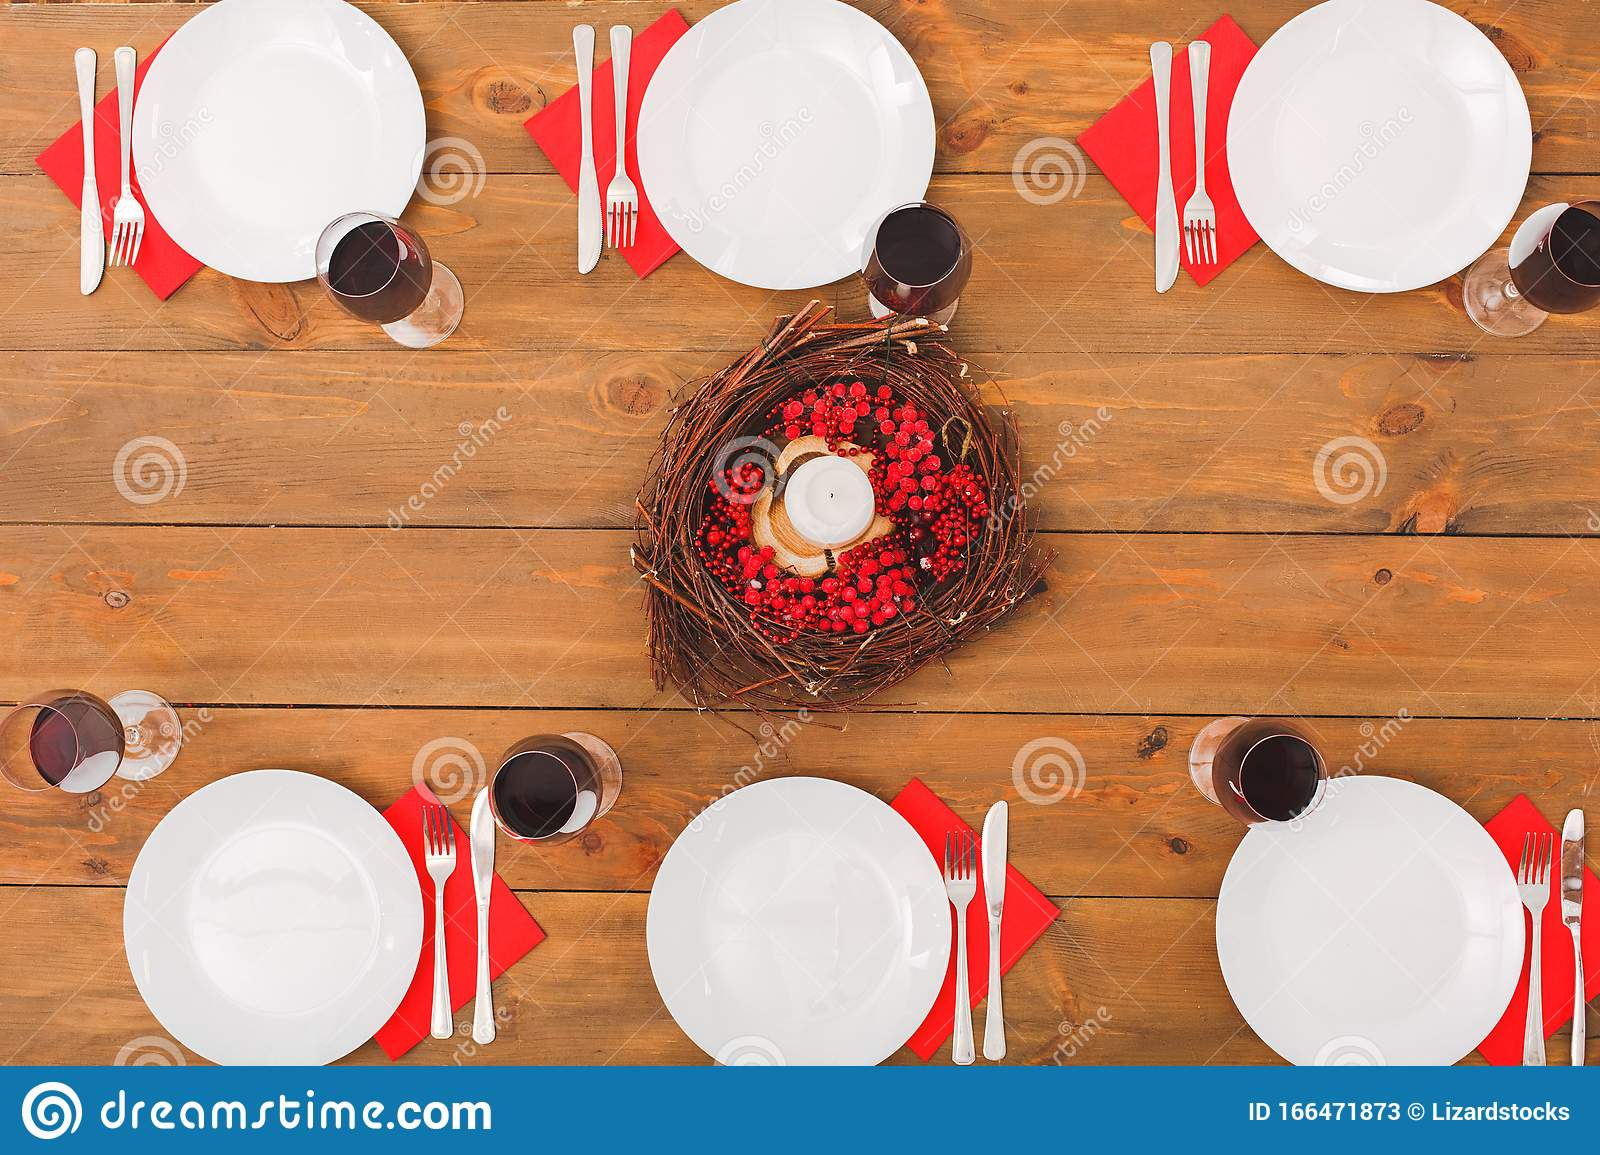 Table Setting For Family Dinner At Christmas Eve Stock Image - Image of christmastime, design ...